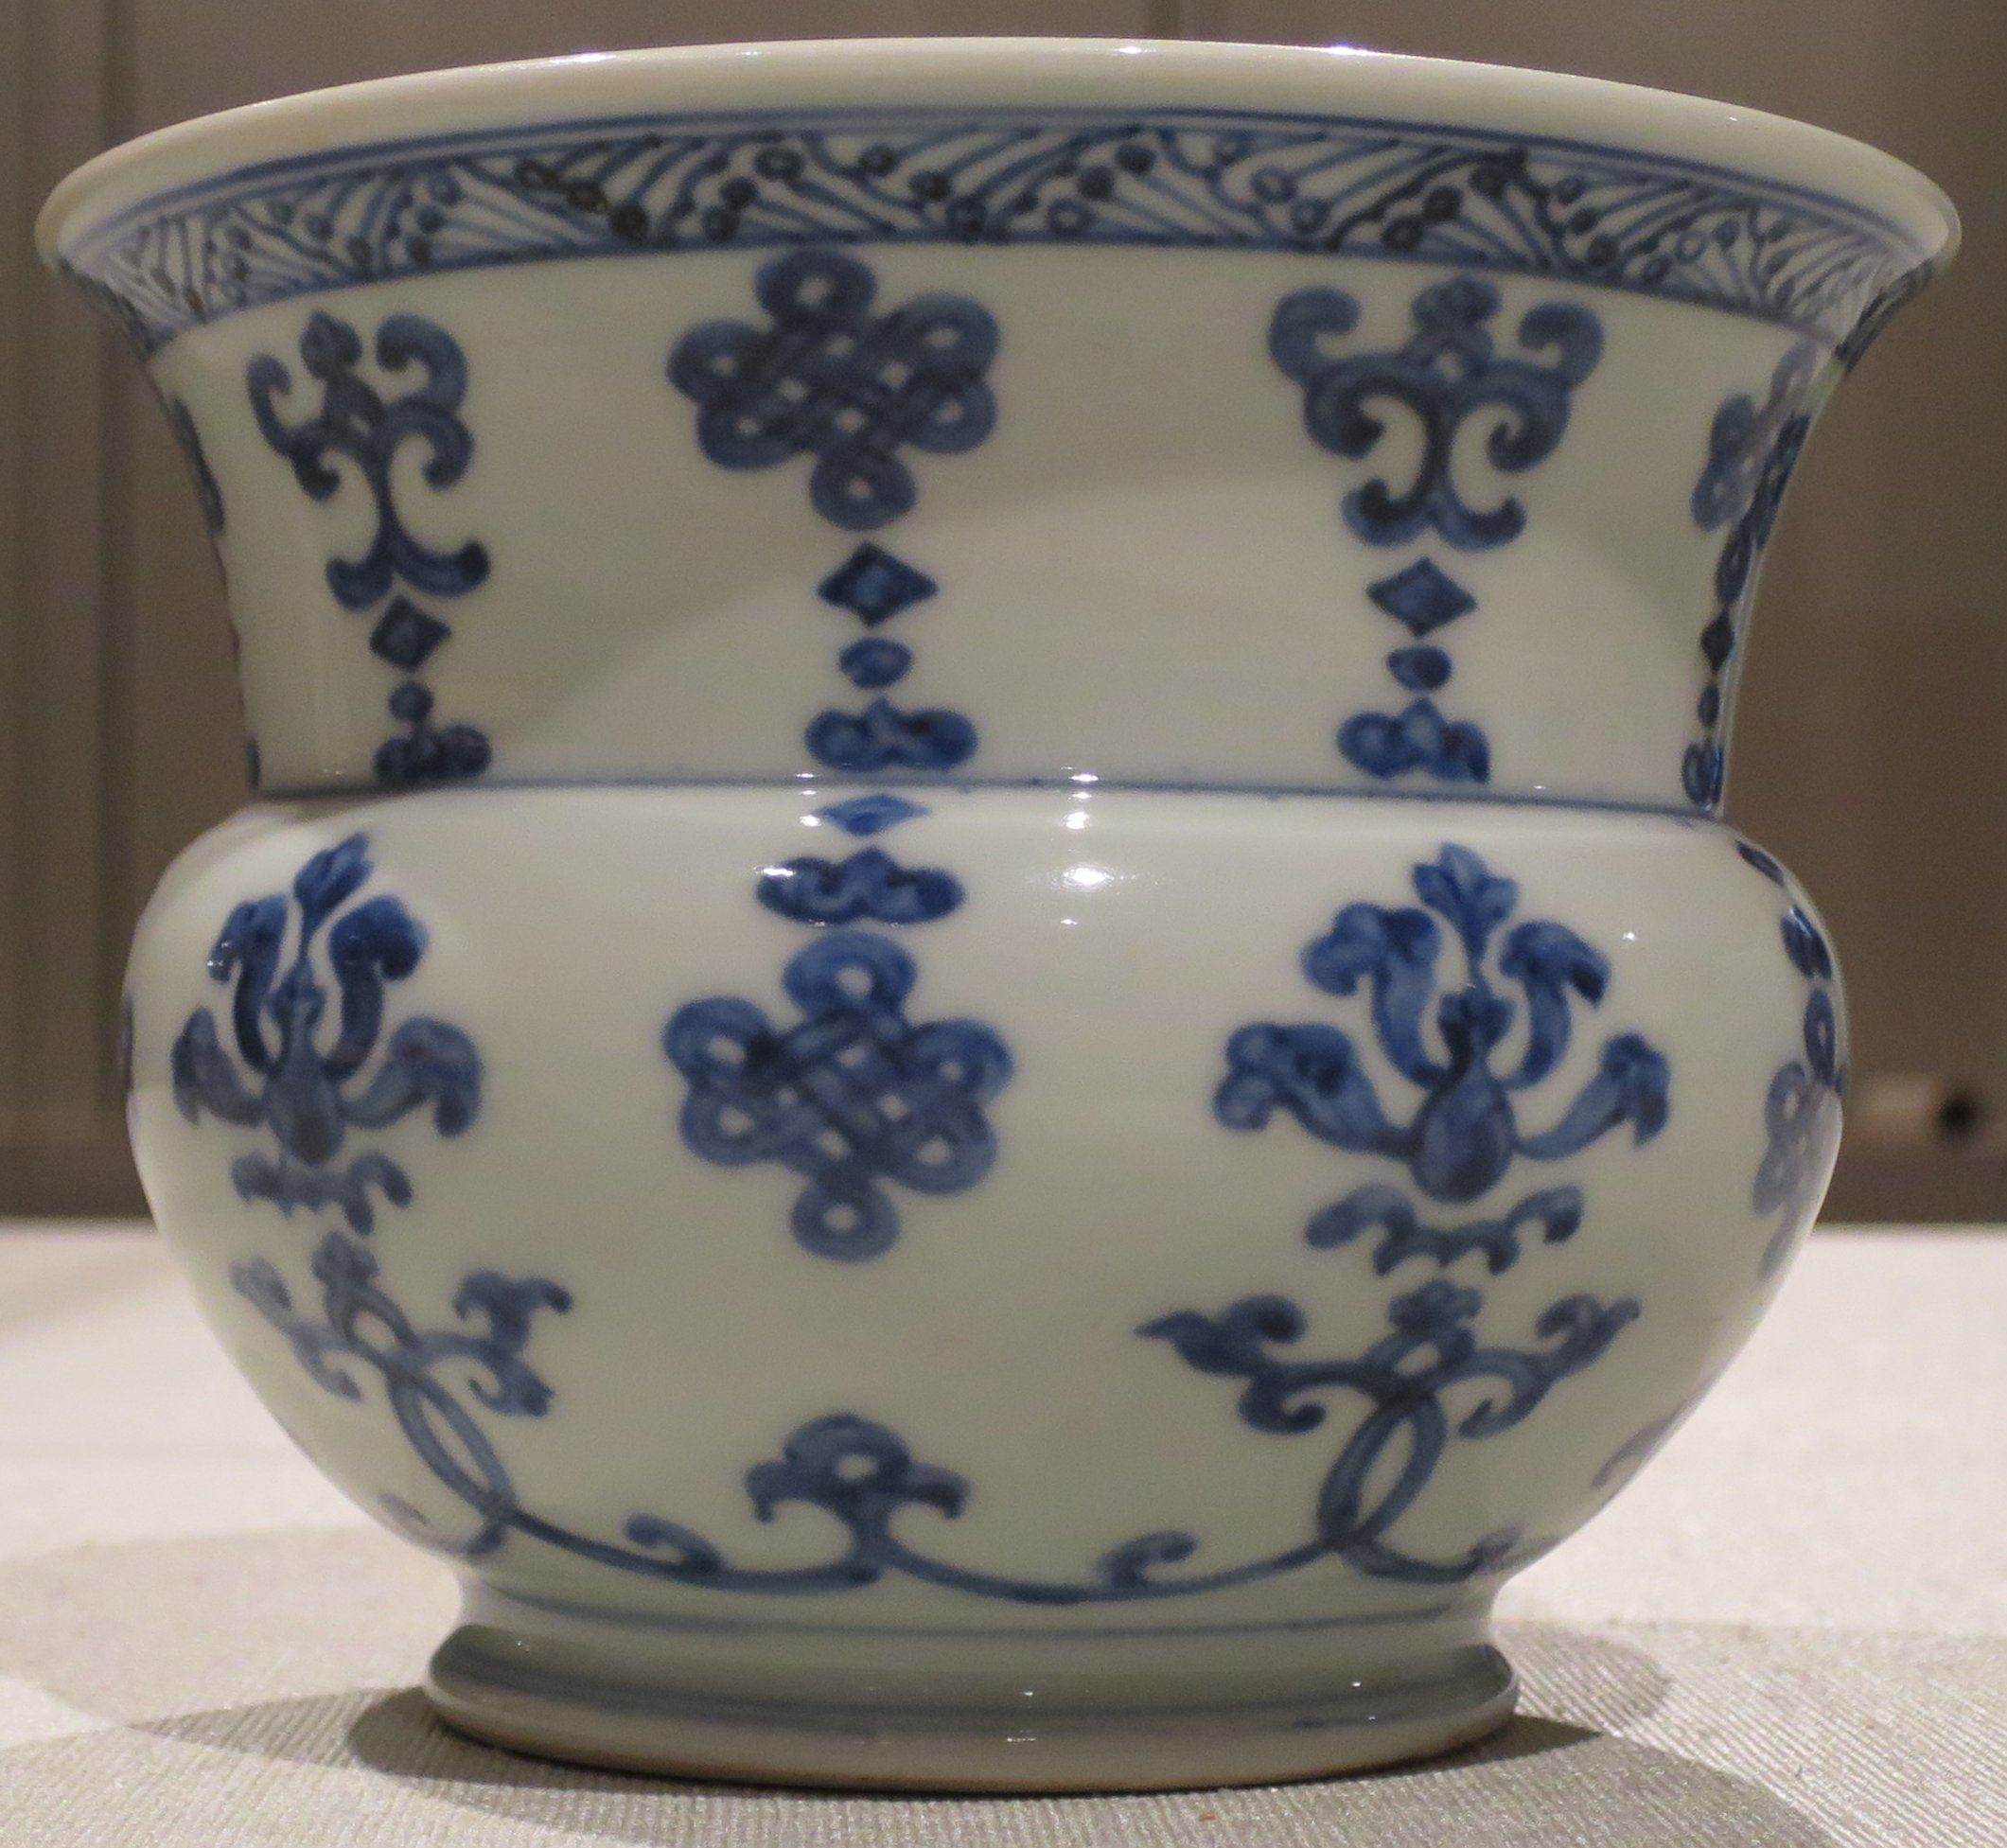 File:Ming dynasty bowl, early 16th century, porcelain